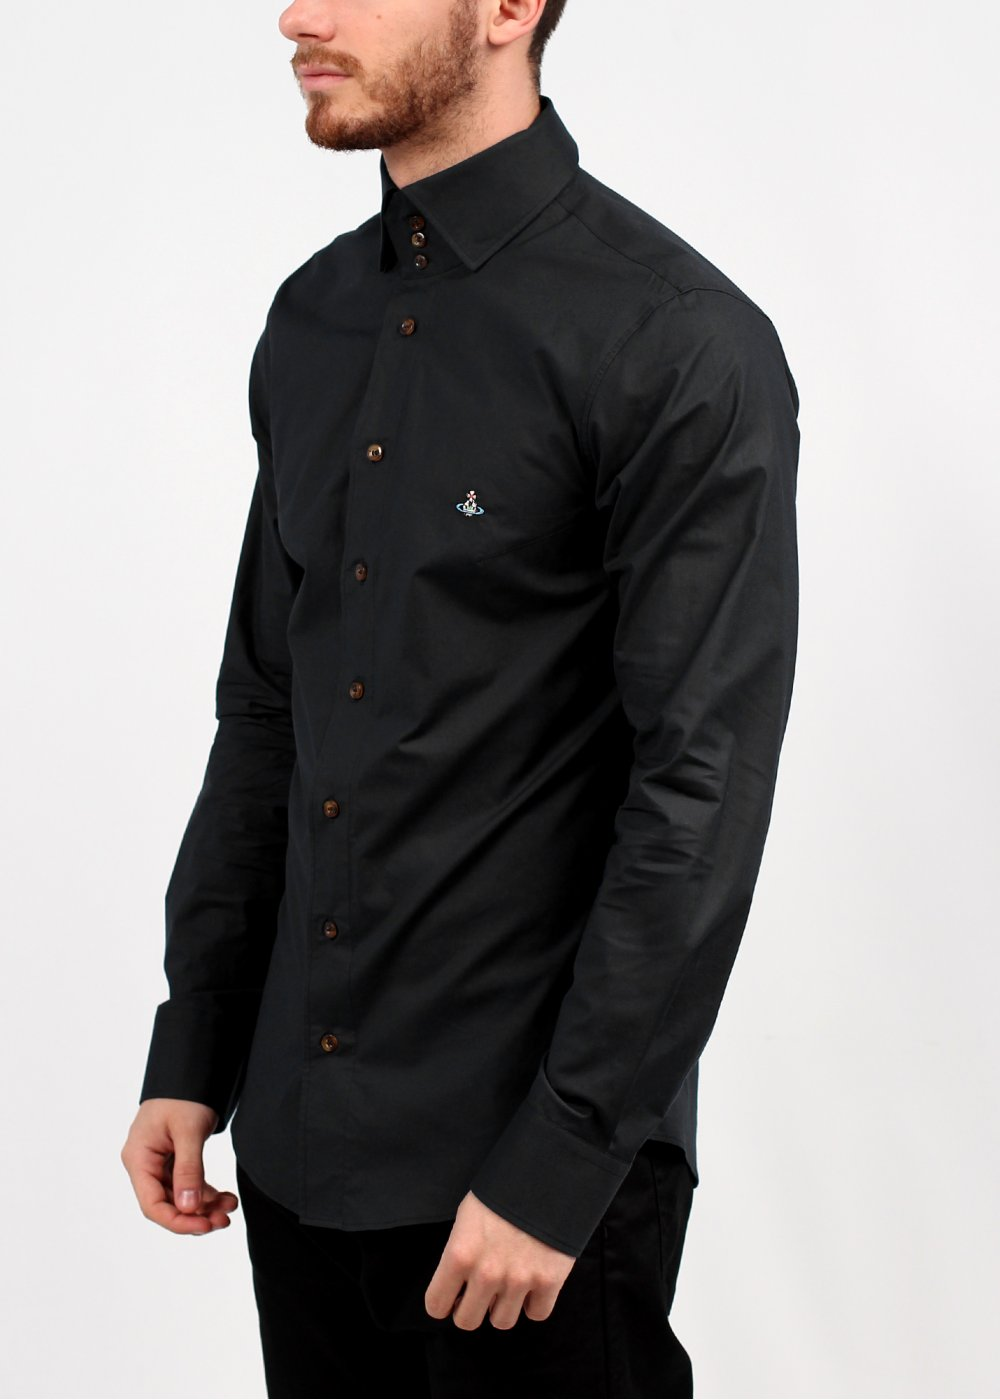 Vivienne westwood 3 button collar shirt black ss14 for Mens button collar shirts